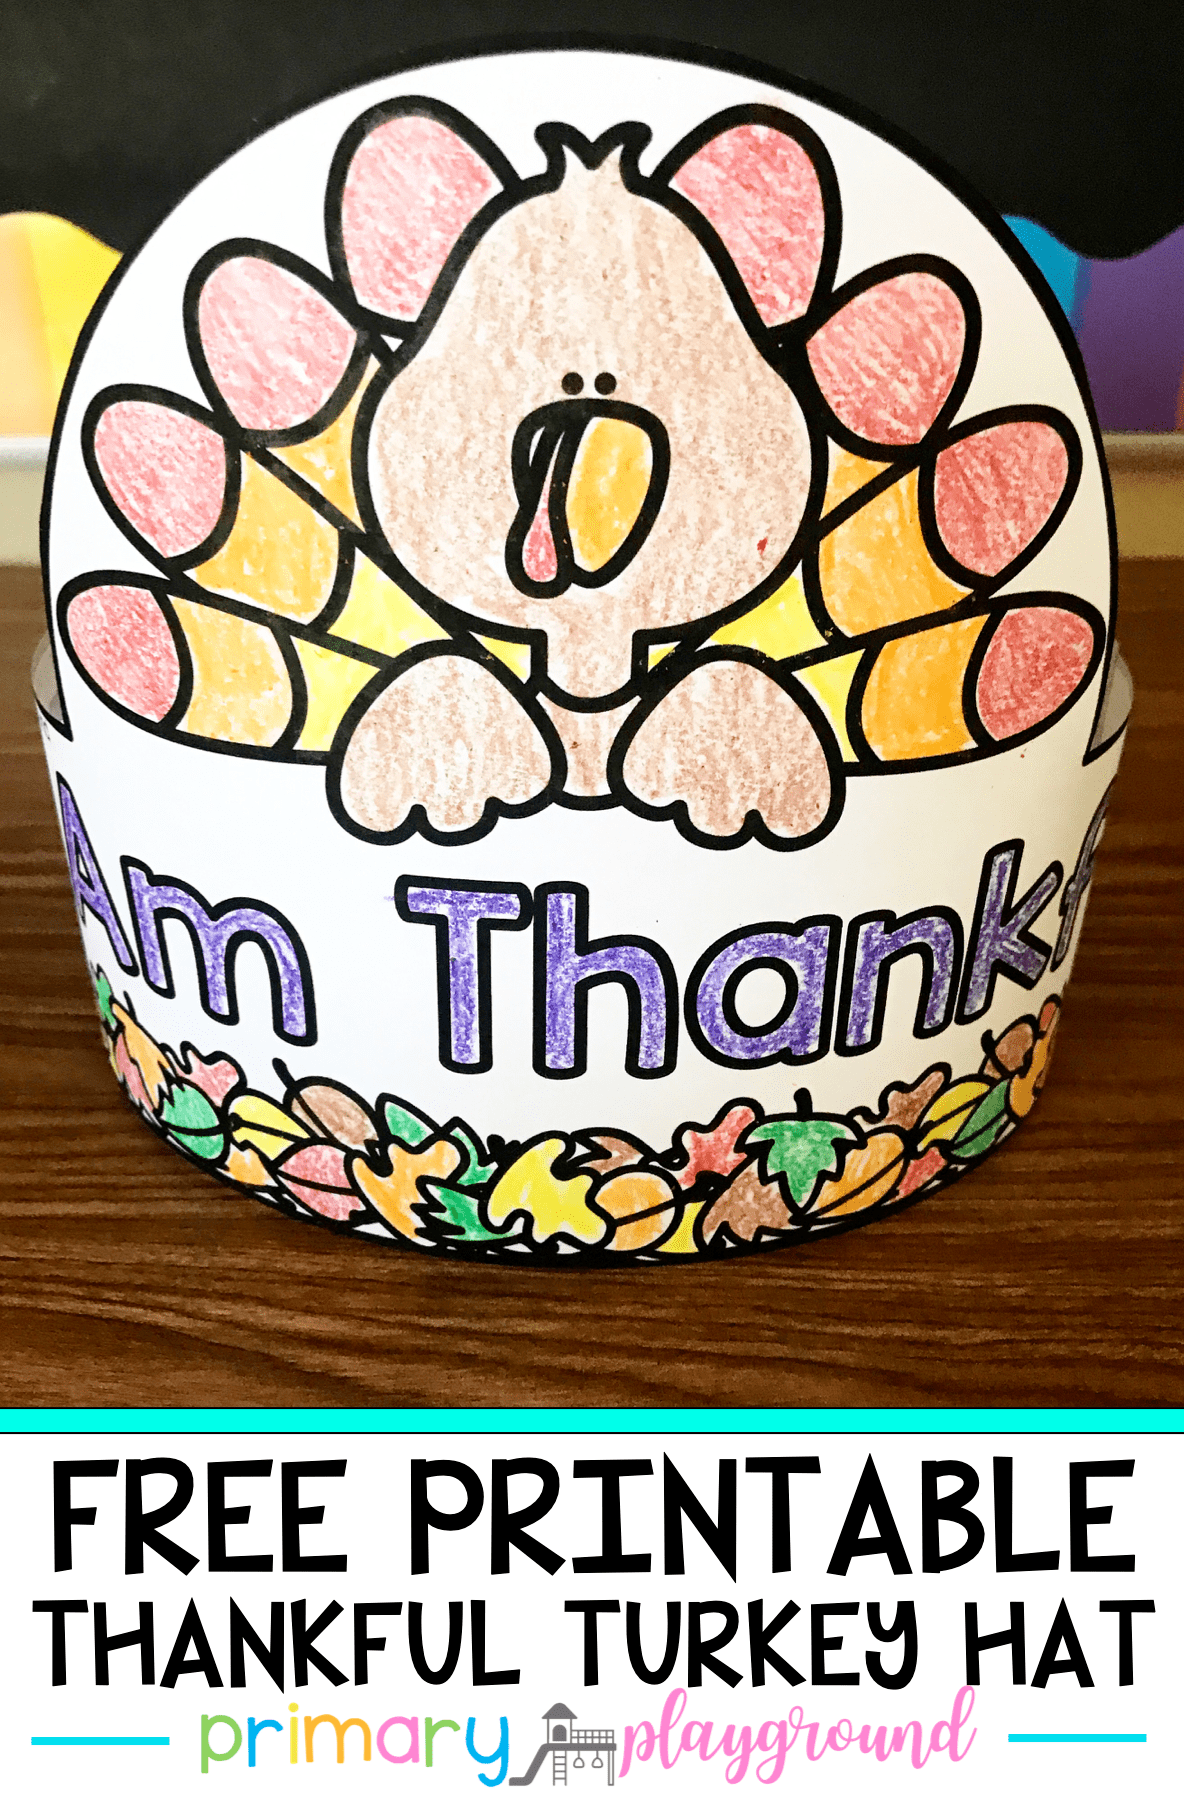 Teaching kids to be thankful can be tricky. We share some books and videos that will help teach them what it means to be thankful and then they can create their very own thankful turkey hat to wear!  #thankful #turkeyhat #thankfulhat #kindergartenthanksgiving